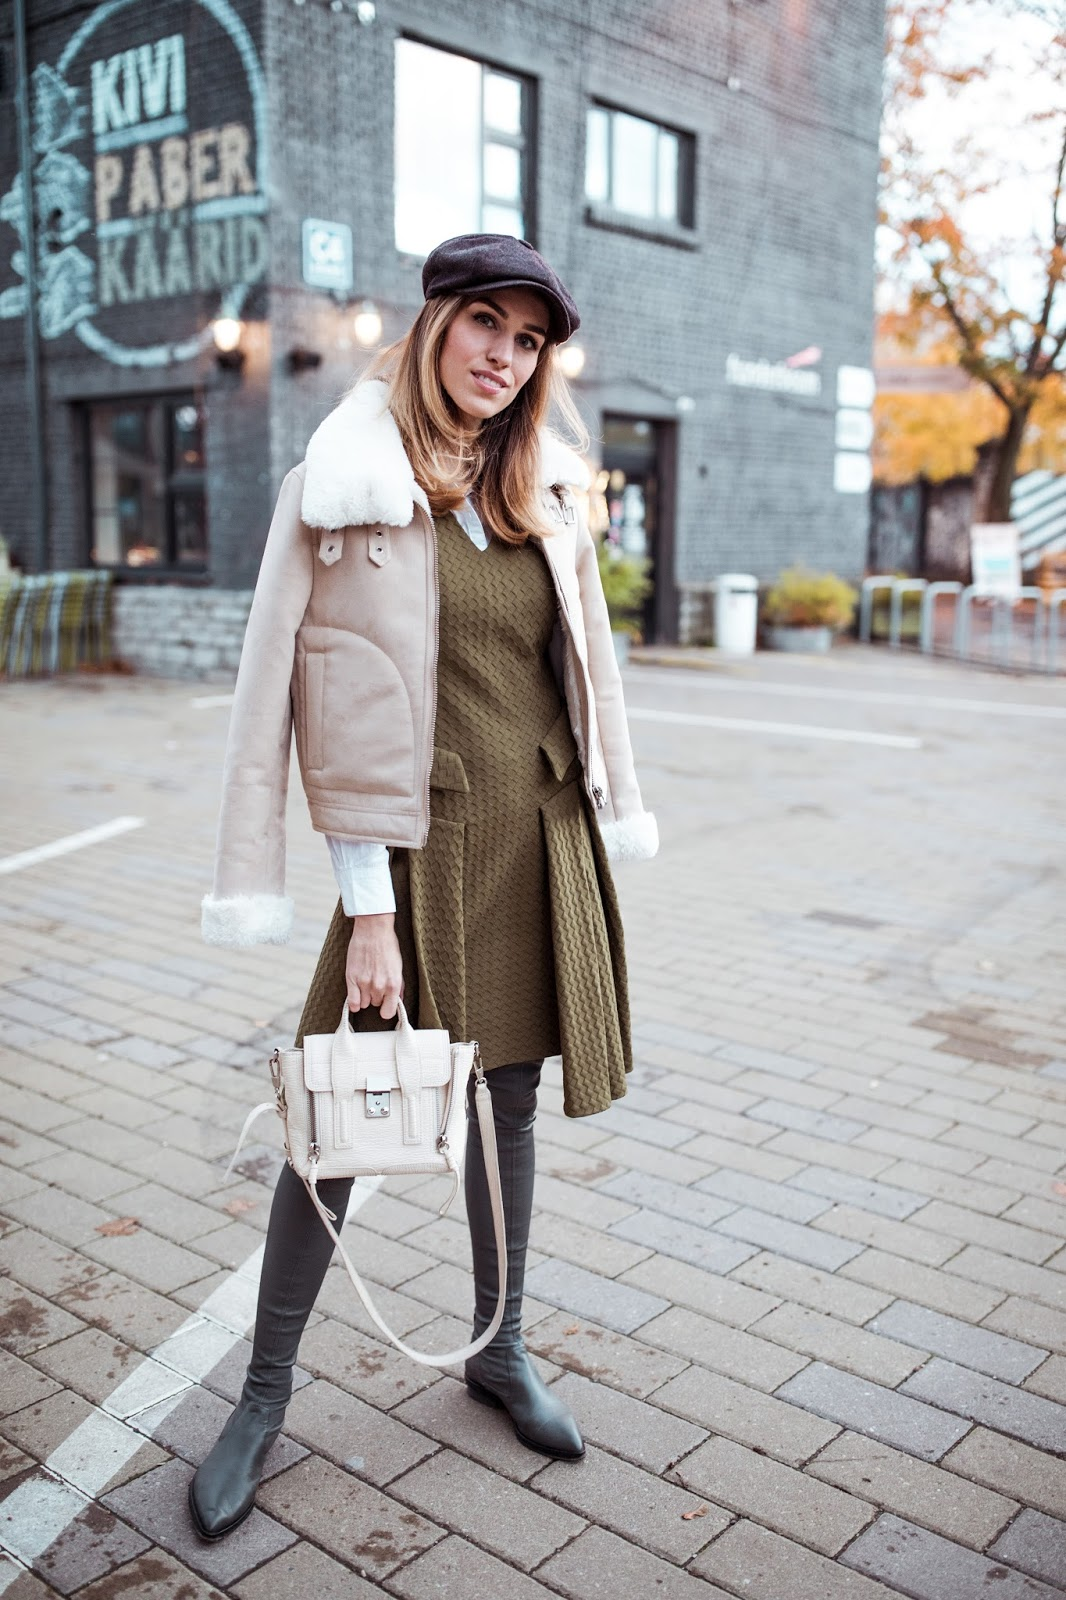 shearling jacket over knee boots fall outfit